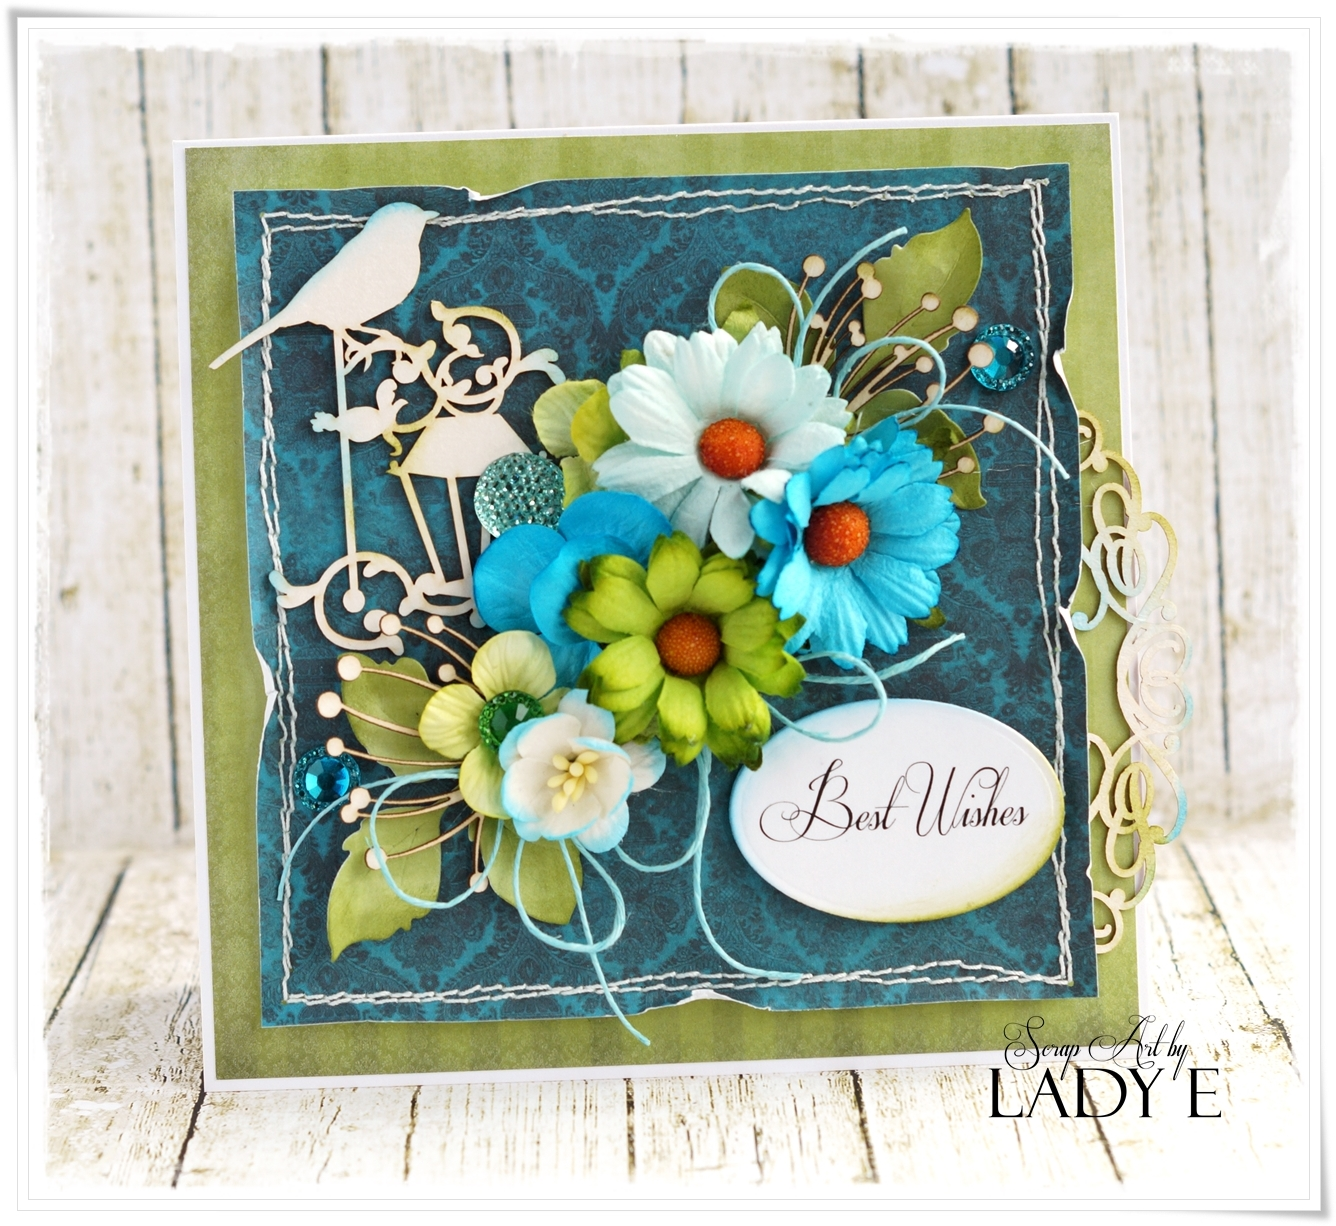 Cards In Rich Colors Wild Orchid Crafts Dt Lady E Design